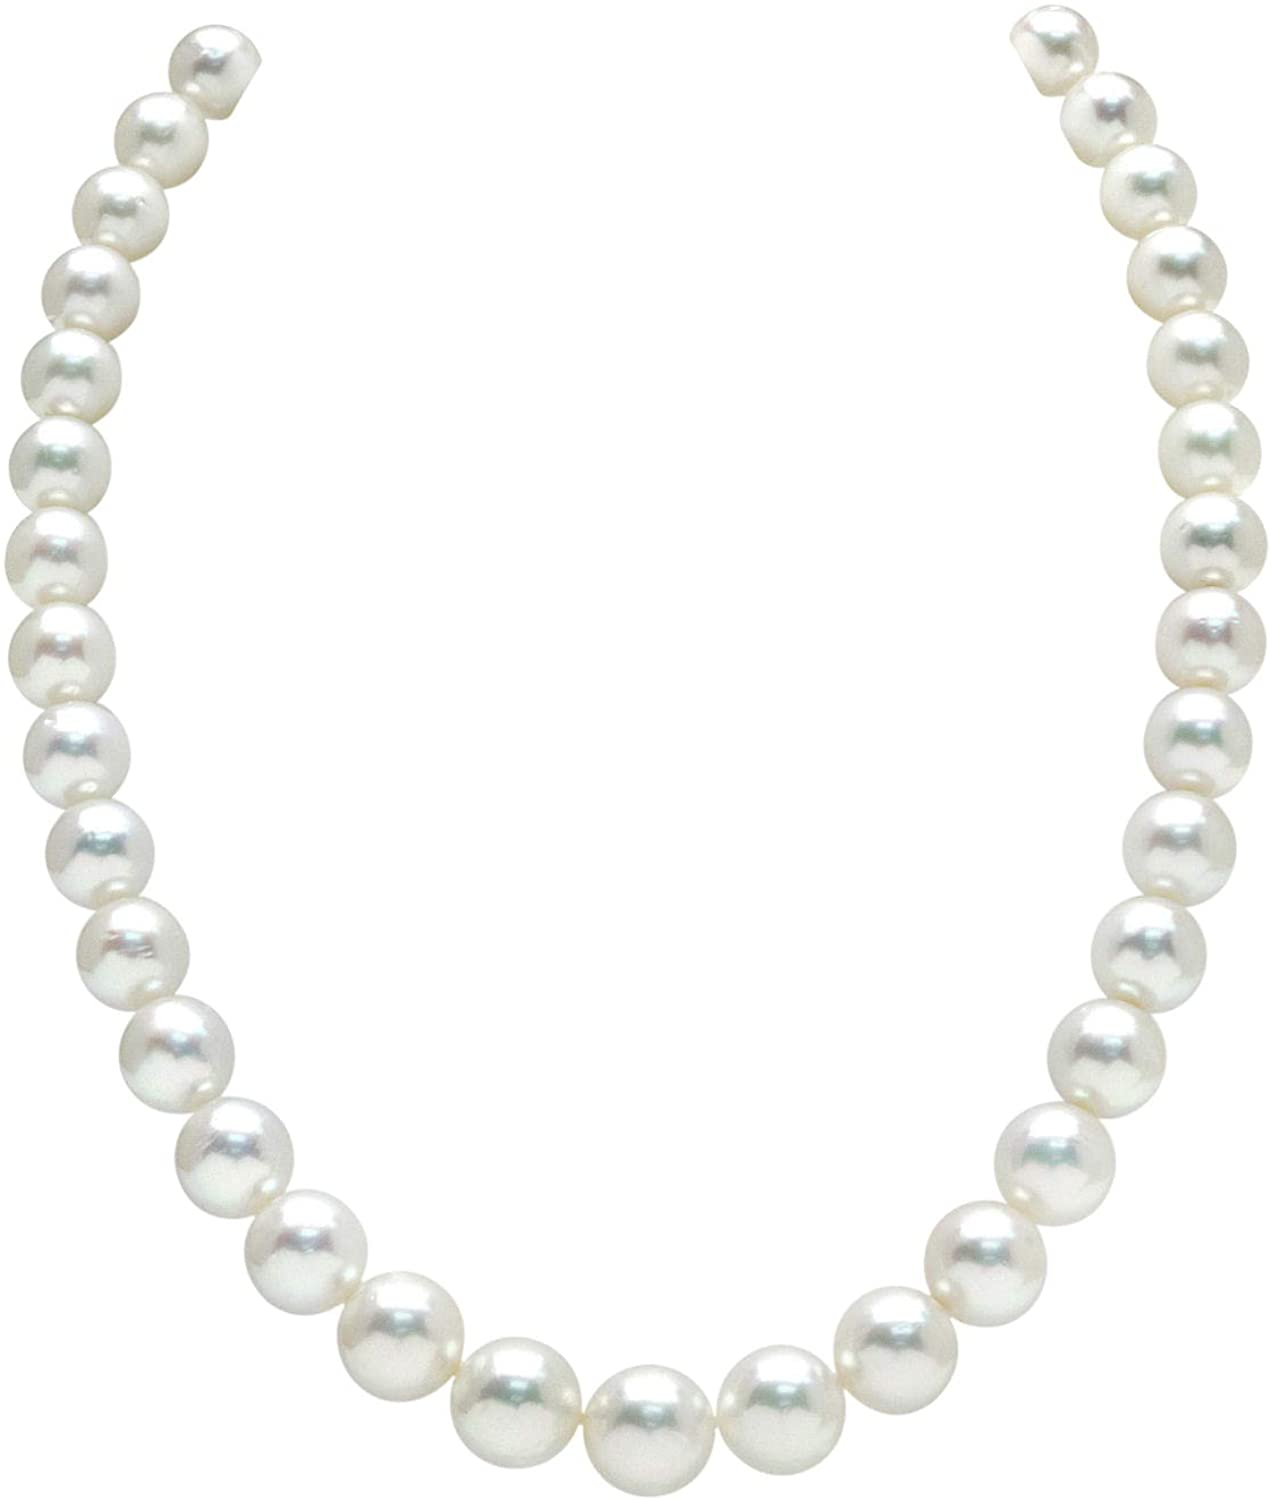 THE PEARL SOURCE 14K Gold 9-11mm Round Genuine White South Sea Cultured Pearl Necklace in 17